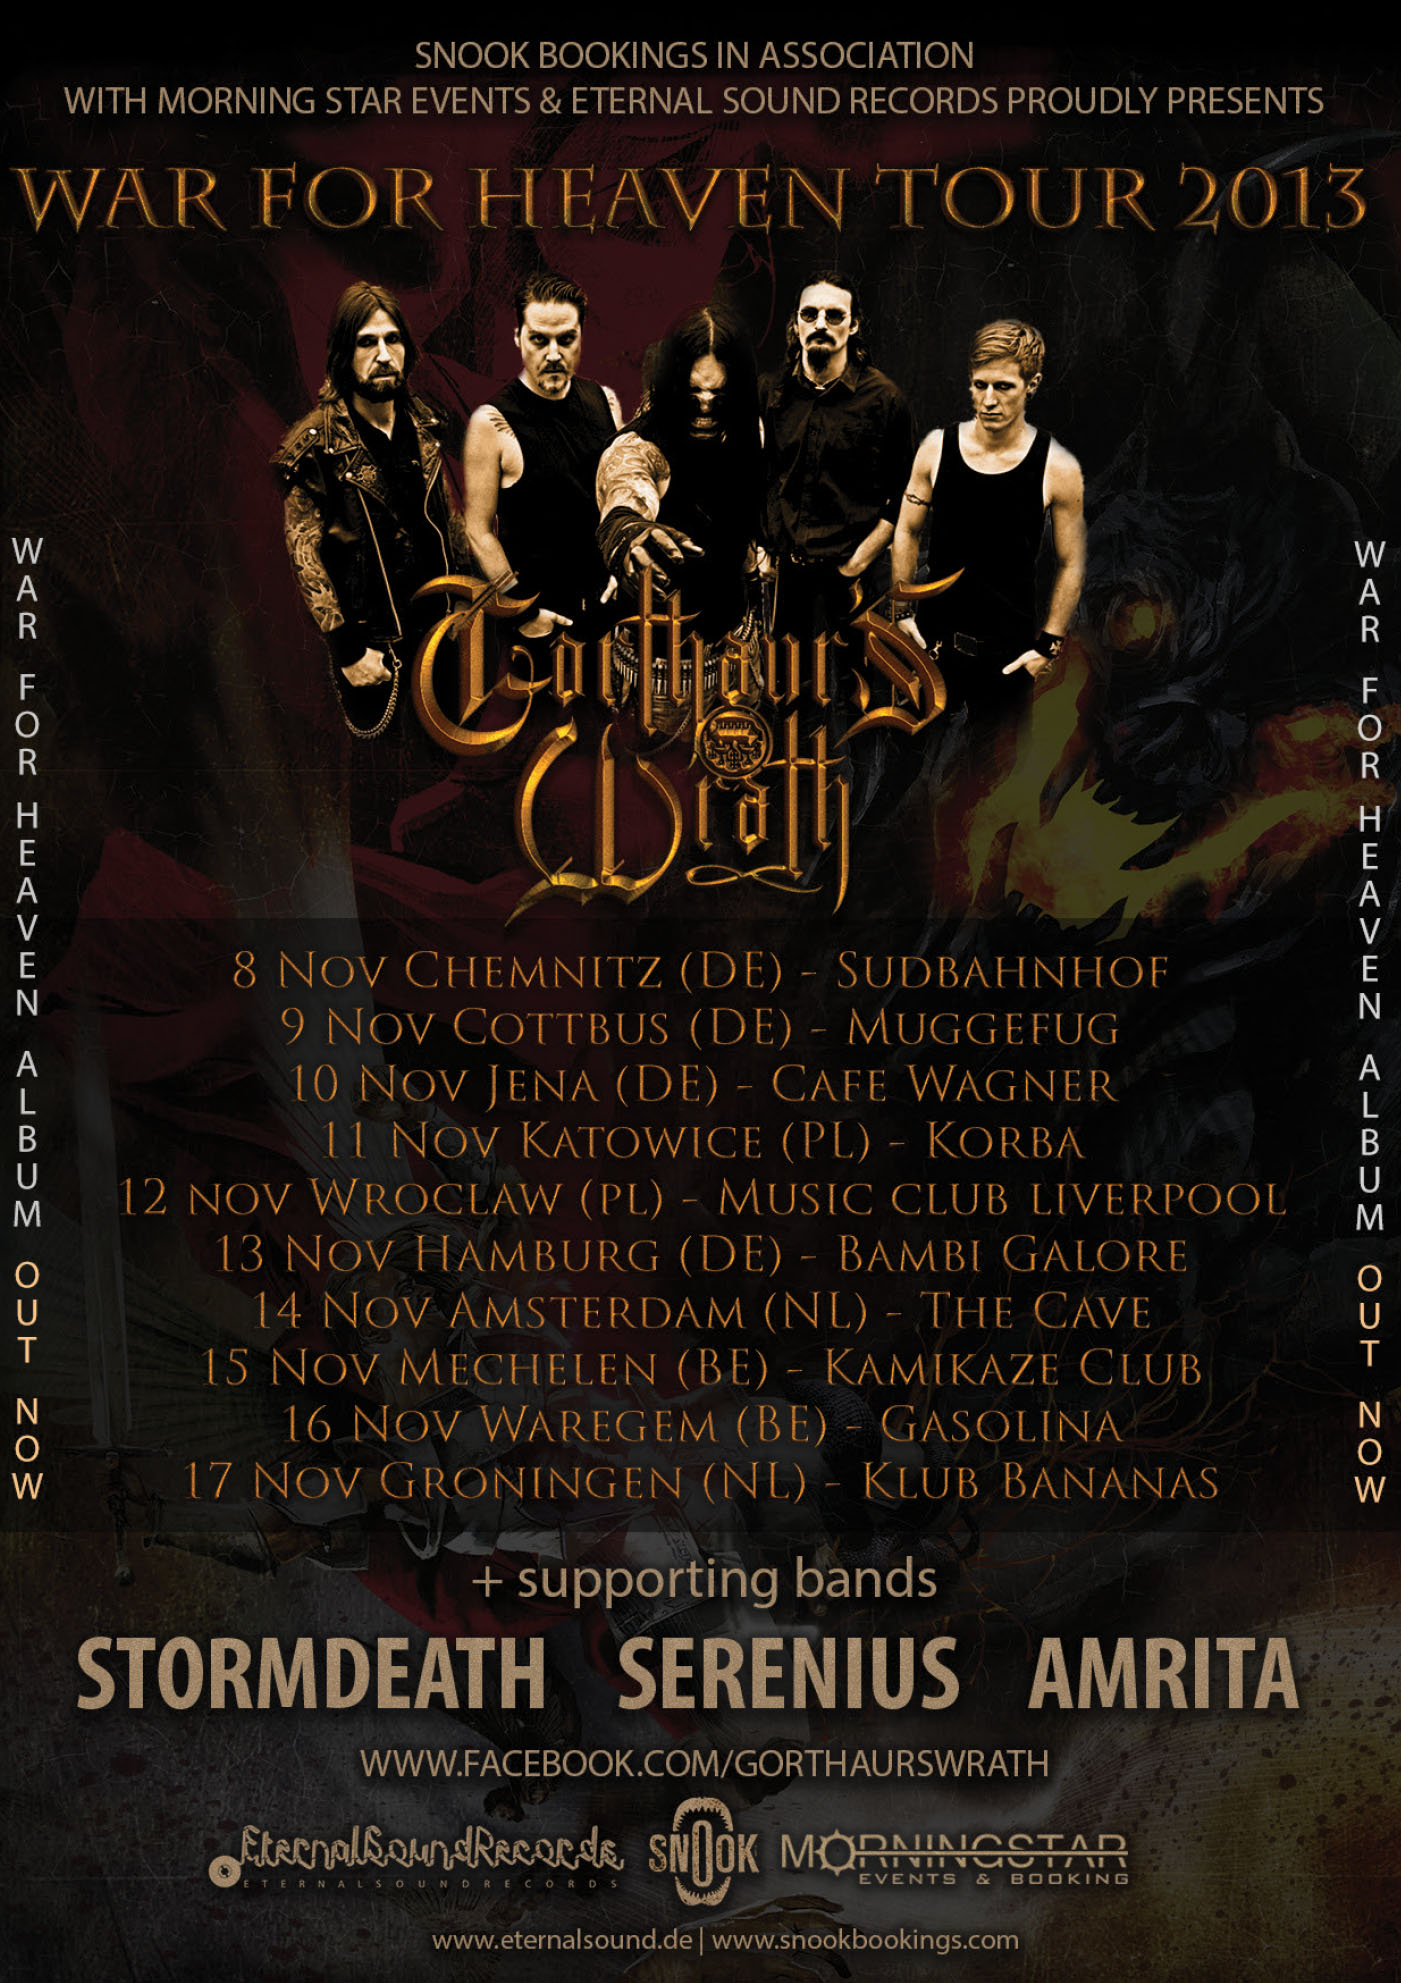 Gorthaur´s Wrath flyer | Flyer design for Gorthaur's Wrath's upcoming tour.